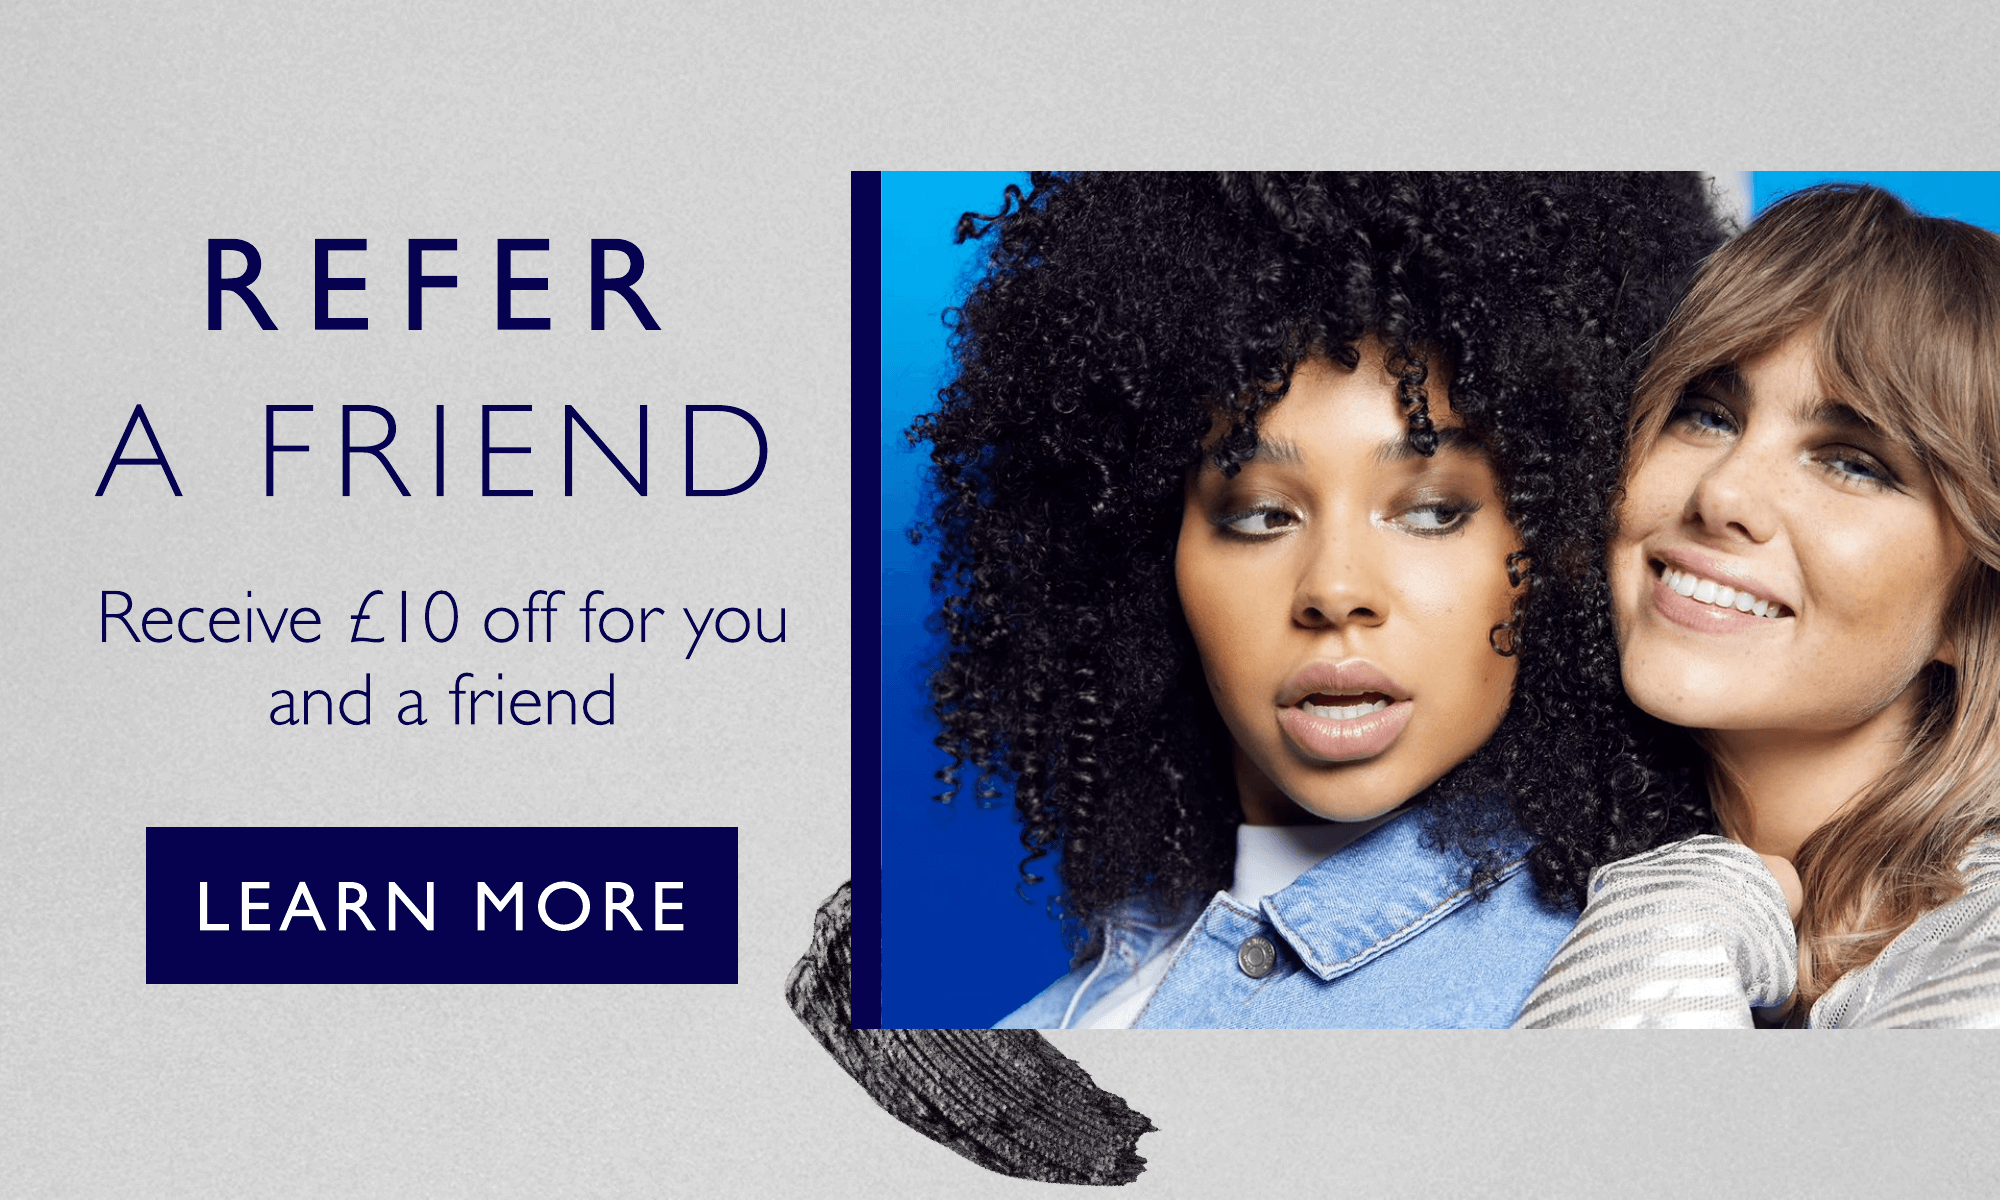 Refer a Friend and receive £10 off for you and a friend!